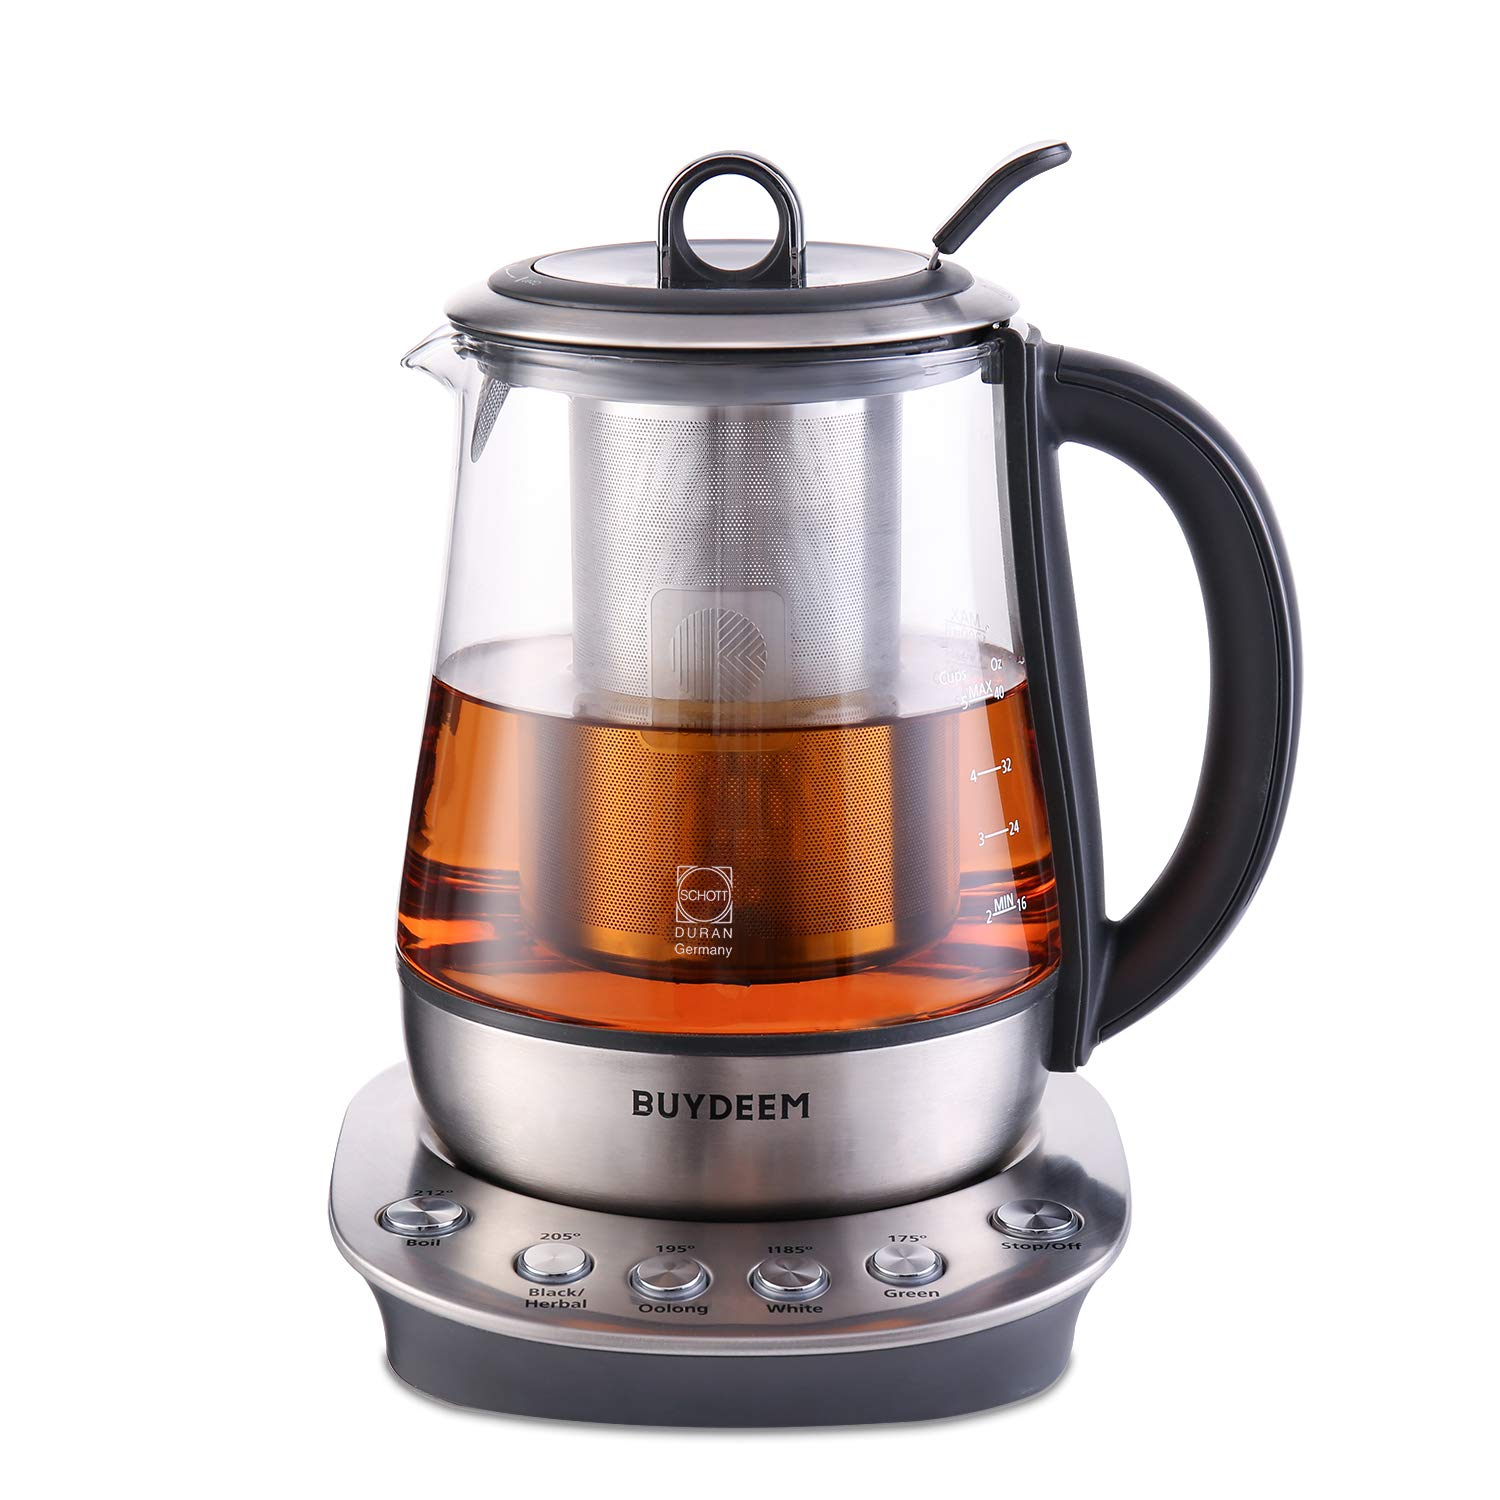 Buydeem K2423 Tea Maker